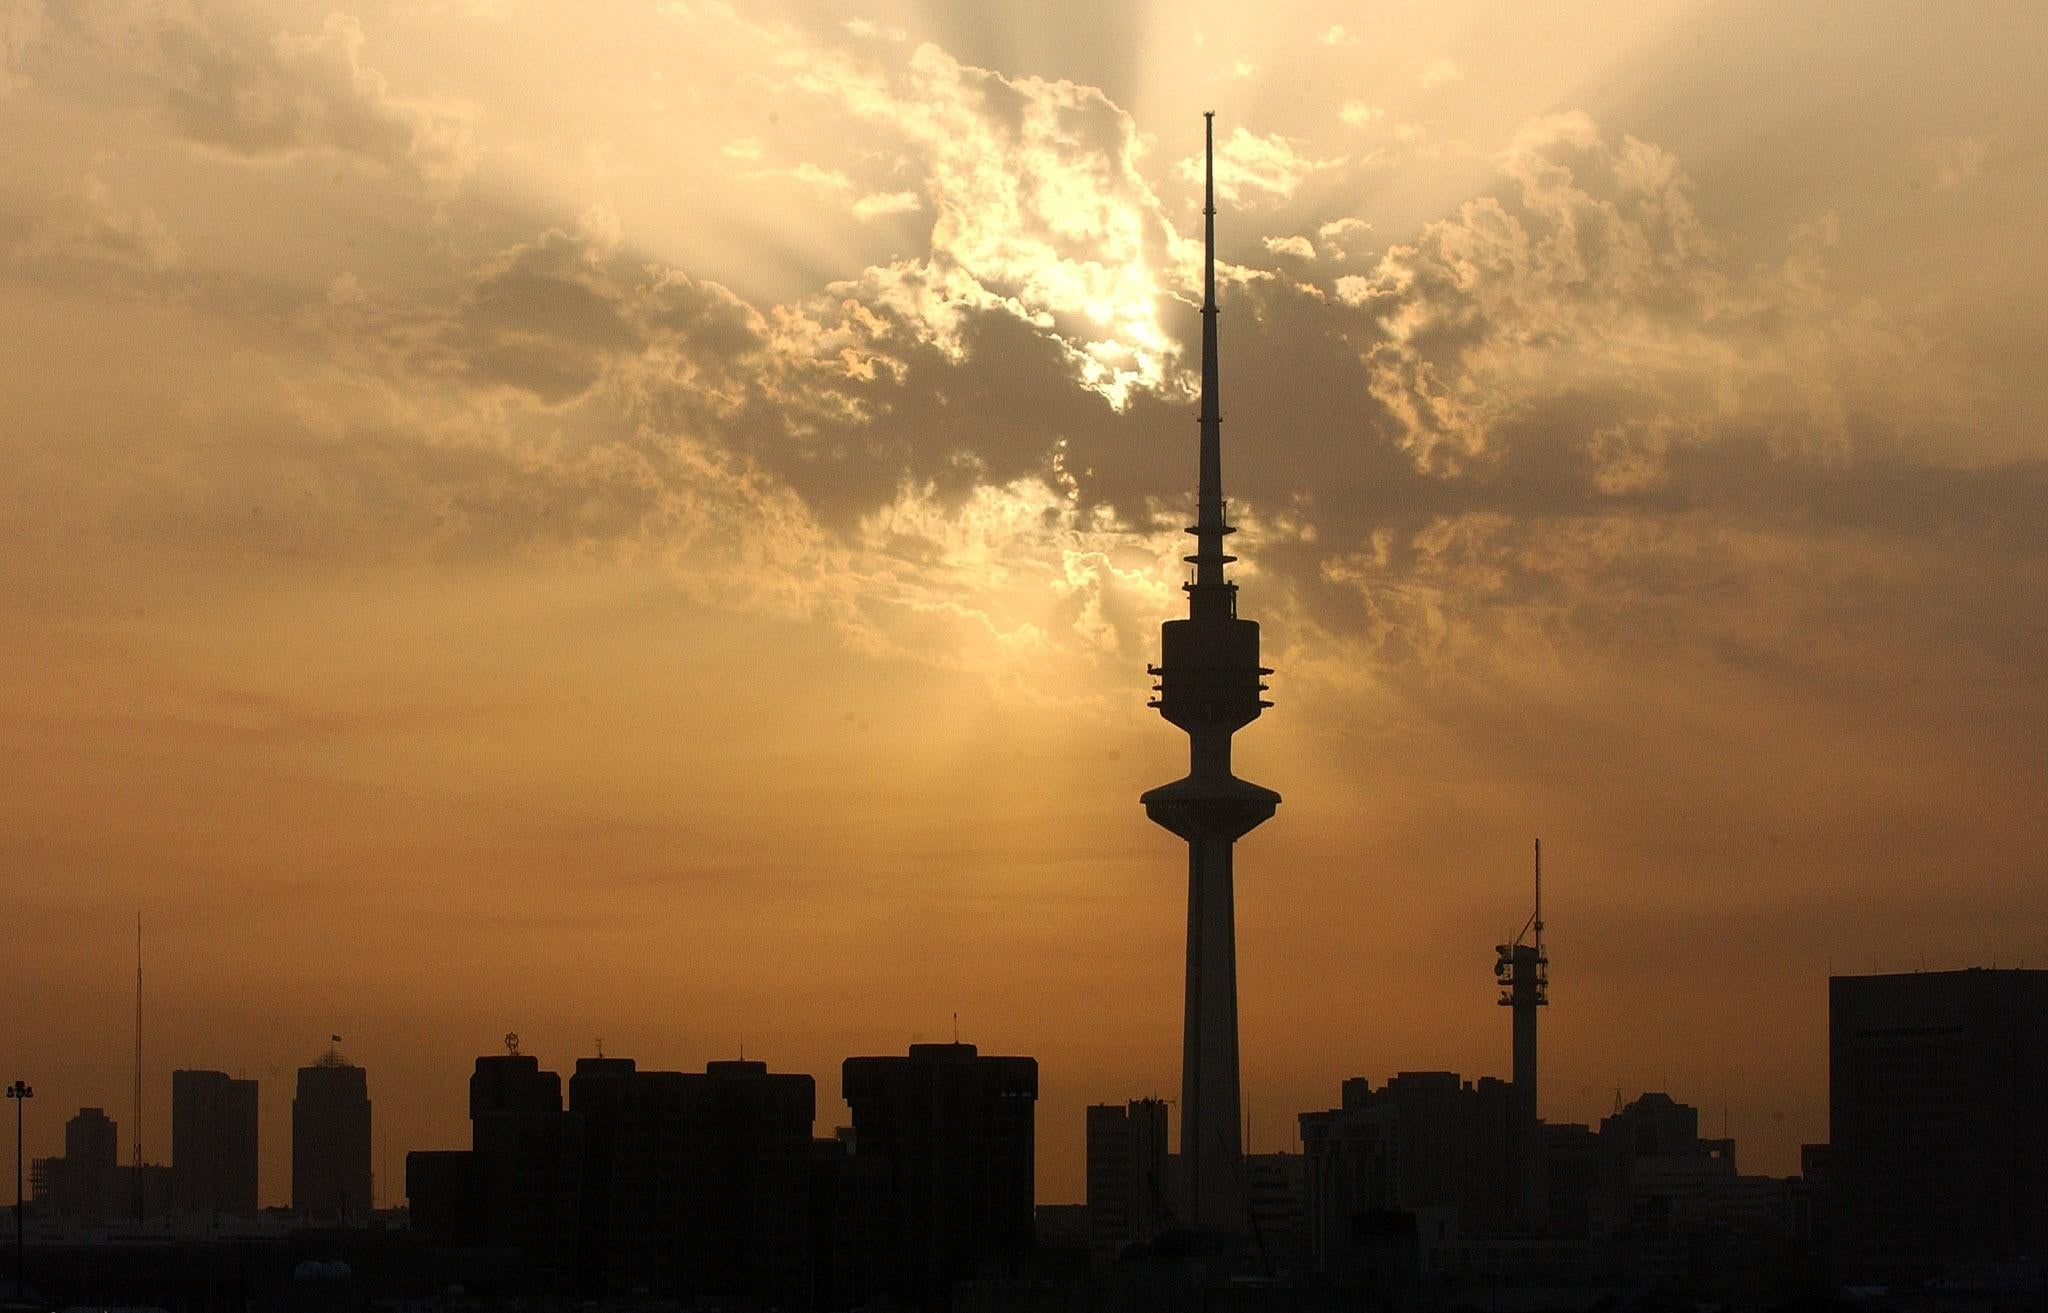 Kuwait City - latest news, breaking stories and comment - The